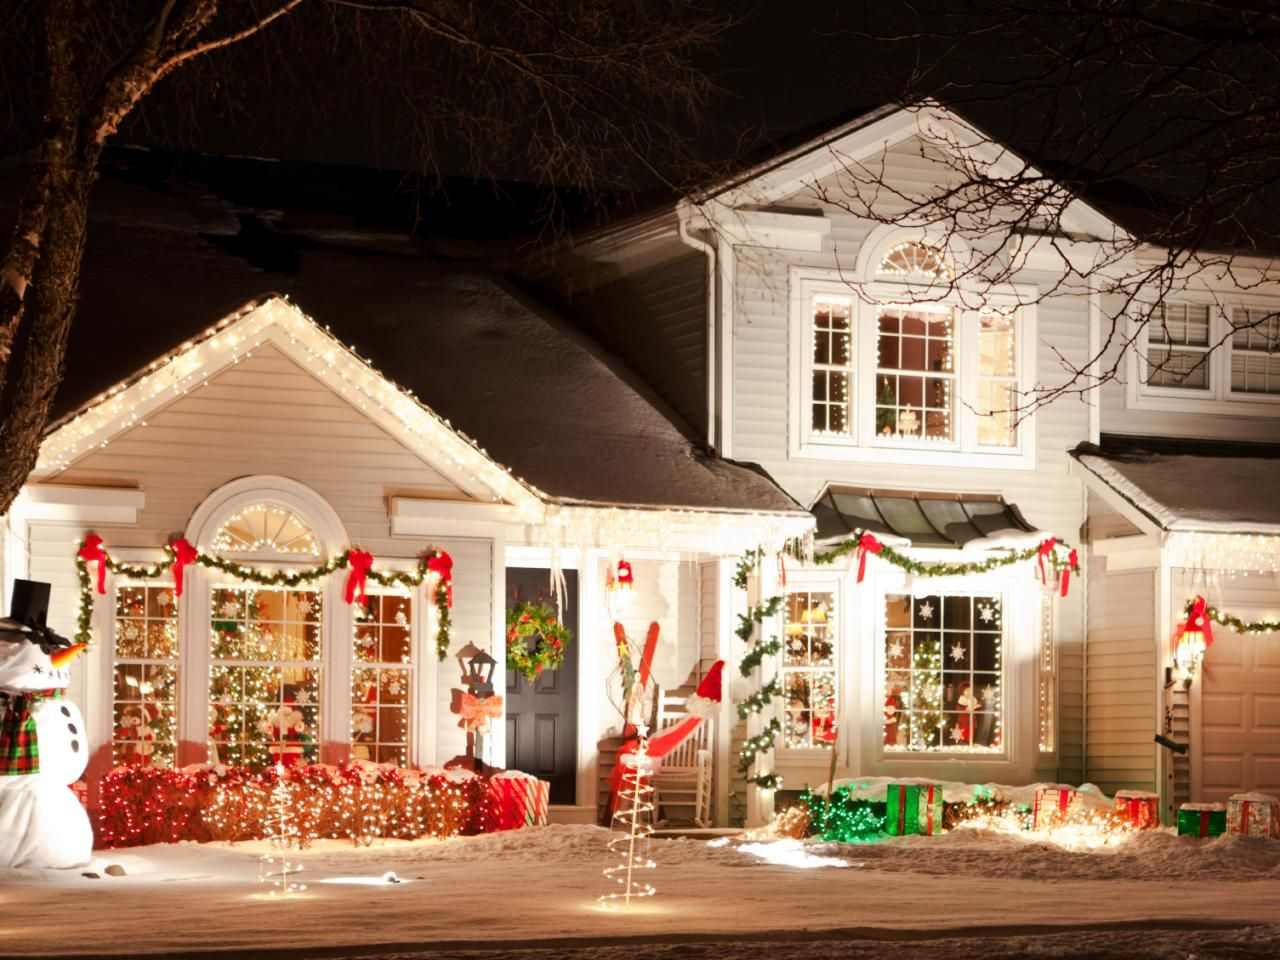 Find Tips And Trends On The Latest Outdoor Lighting Gadgets And Decorations Outdoor Christmas Lights Christmas House Lights Christmas Lights Outside